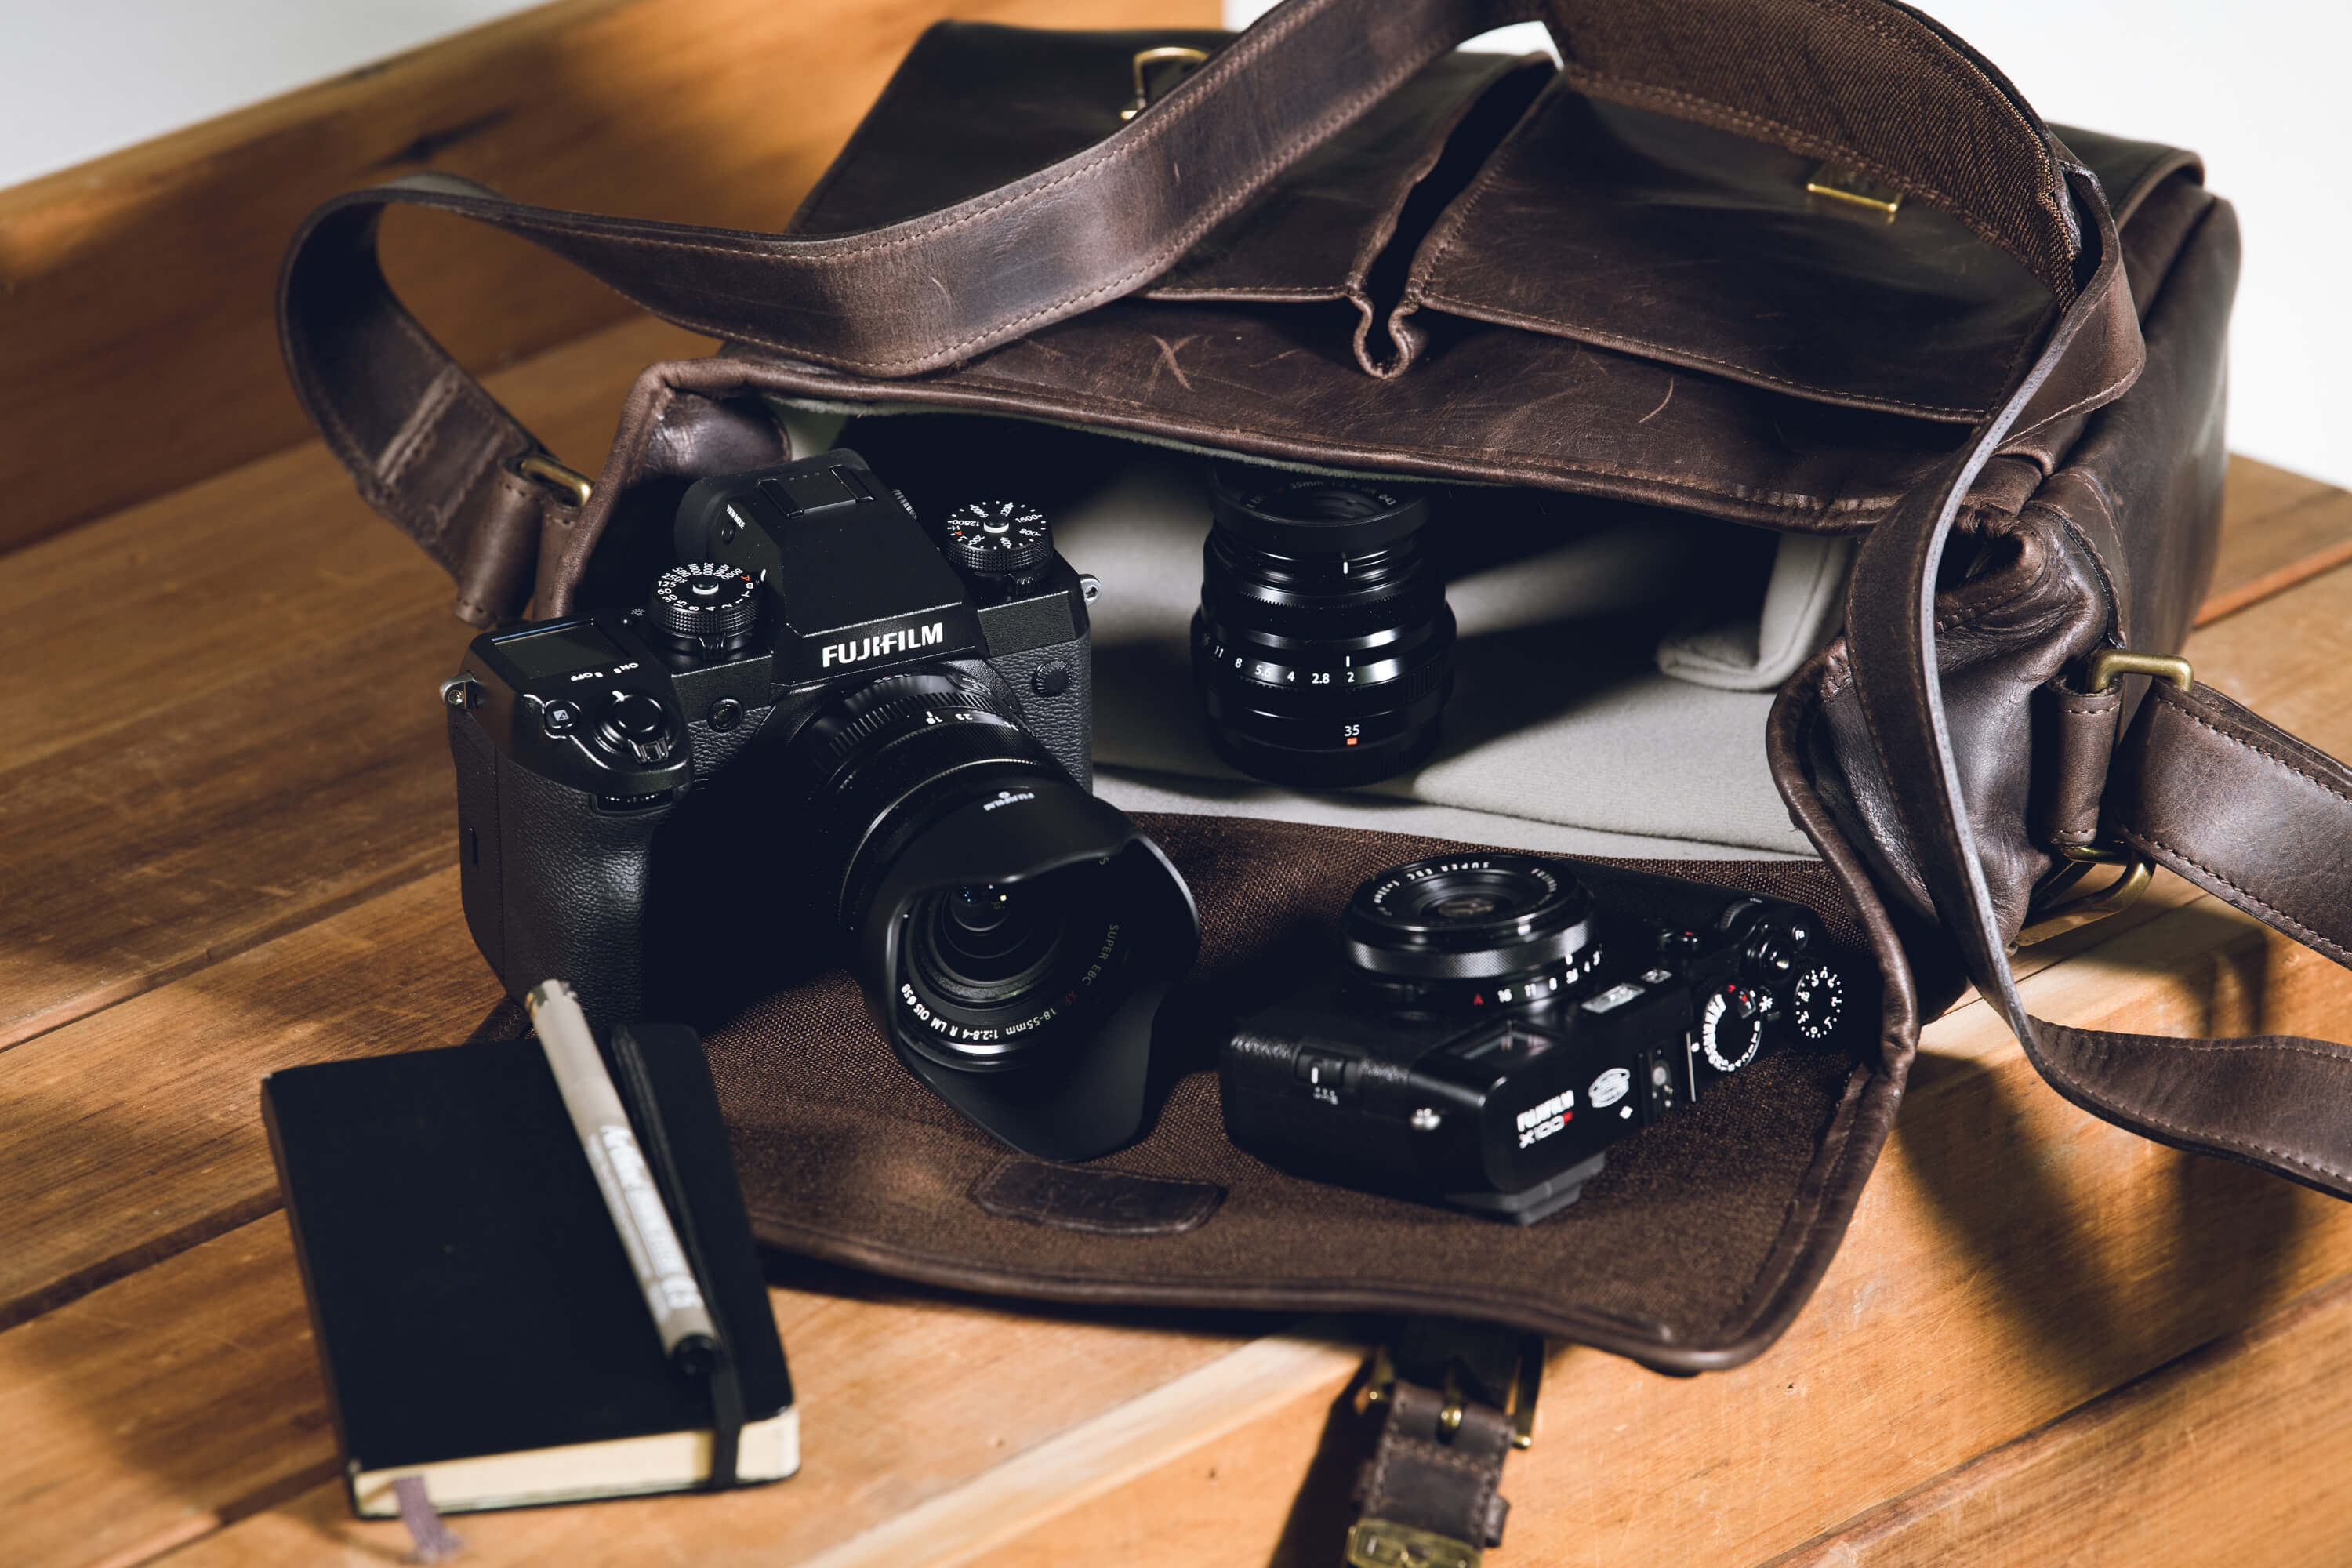 Camera bag buying guide